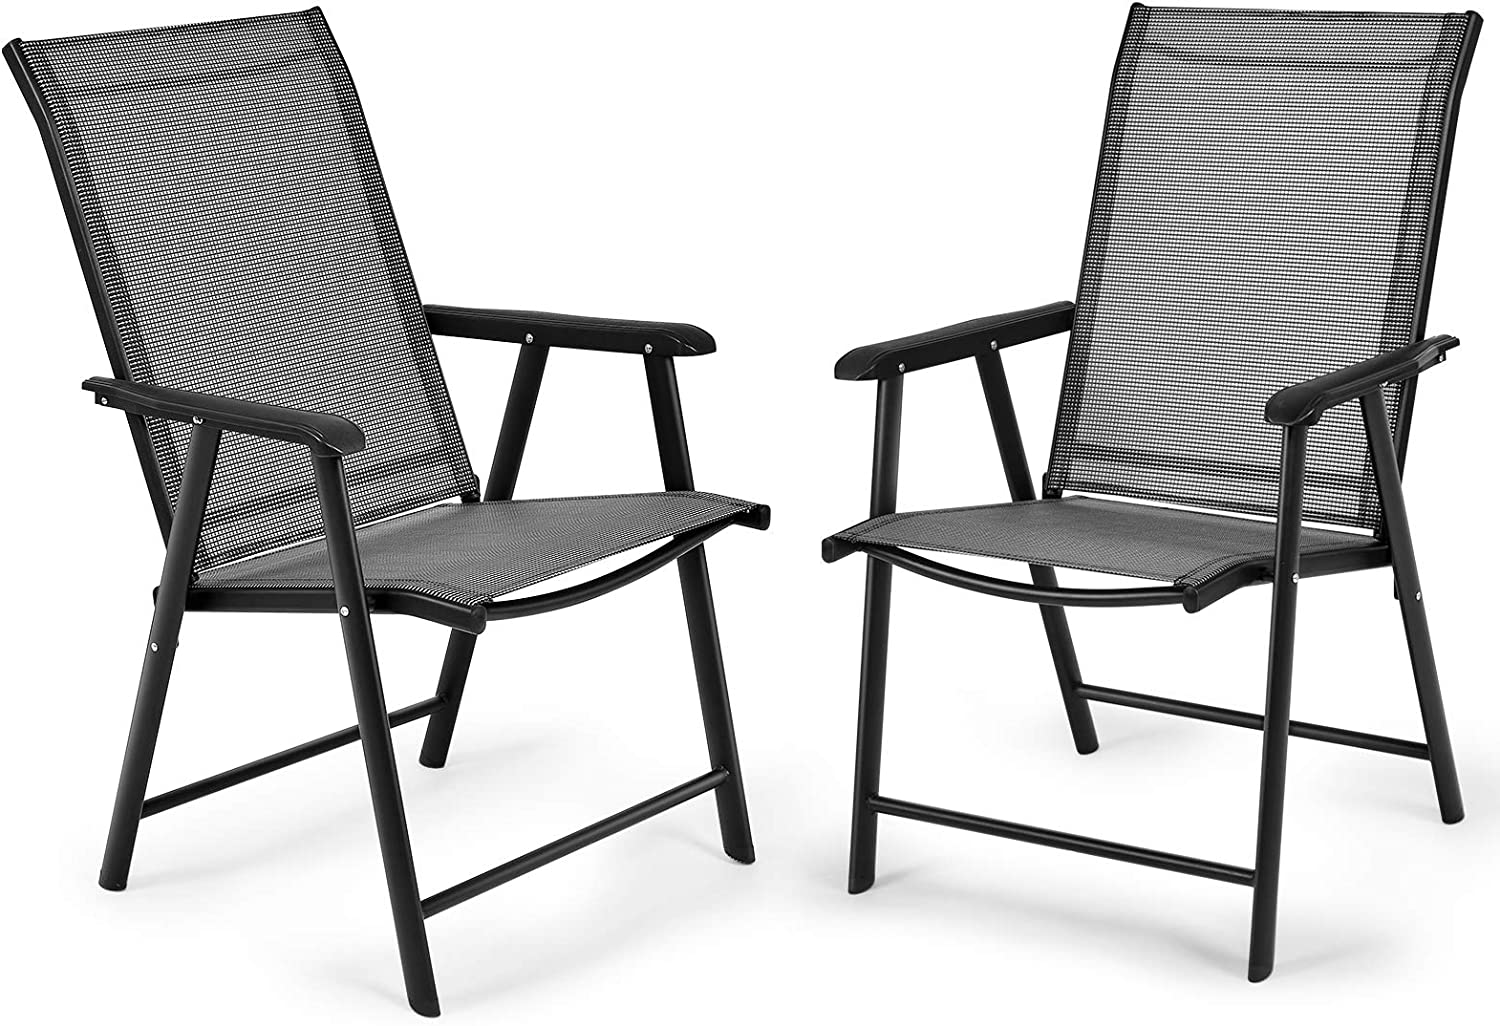 RELAX4LIFE Patio Folding Chairs Set Long-awaited of W High gift Backrest Armrest 4